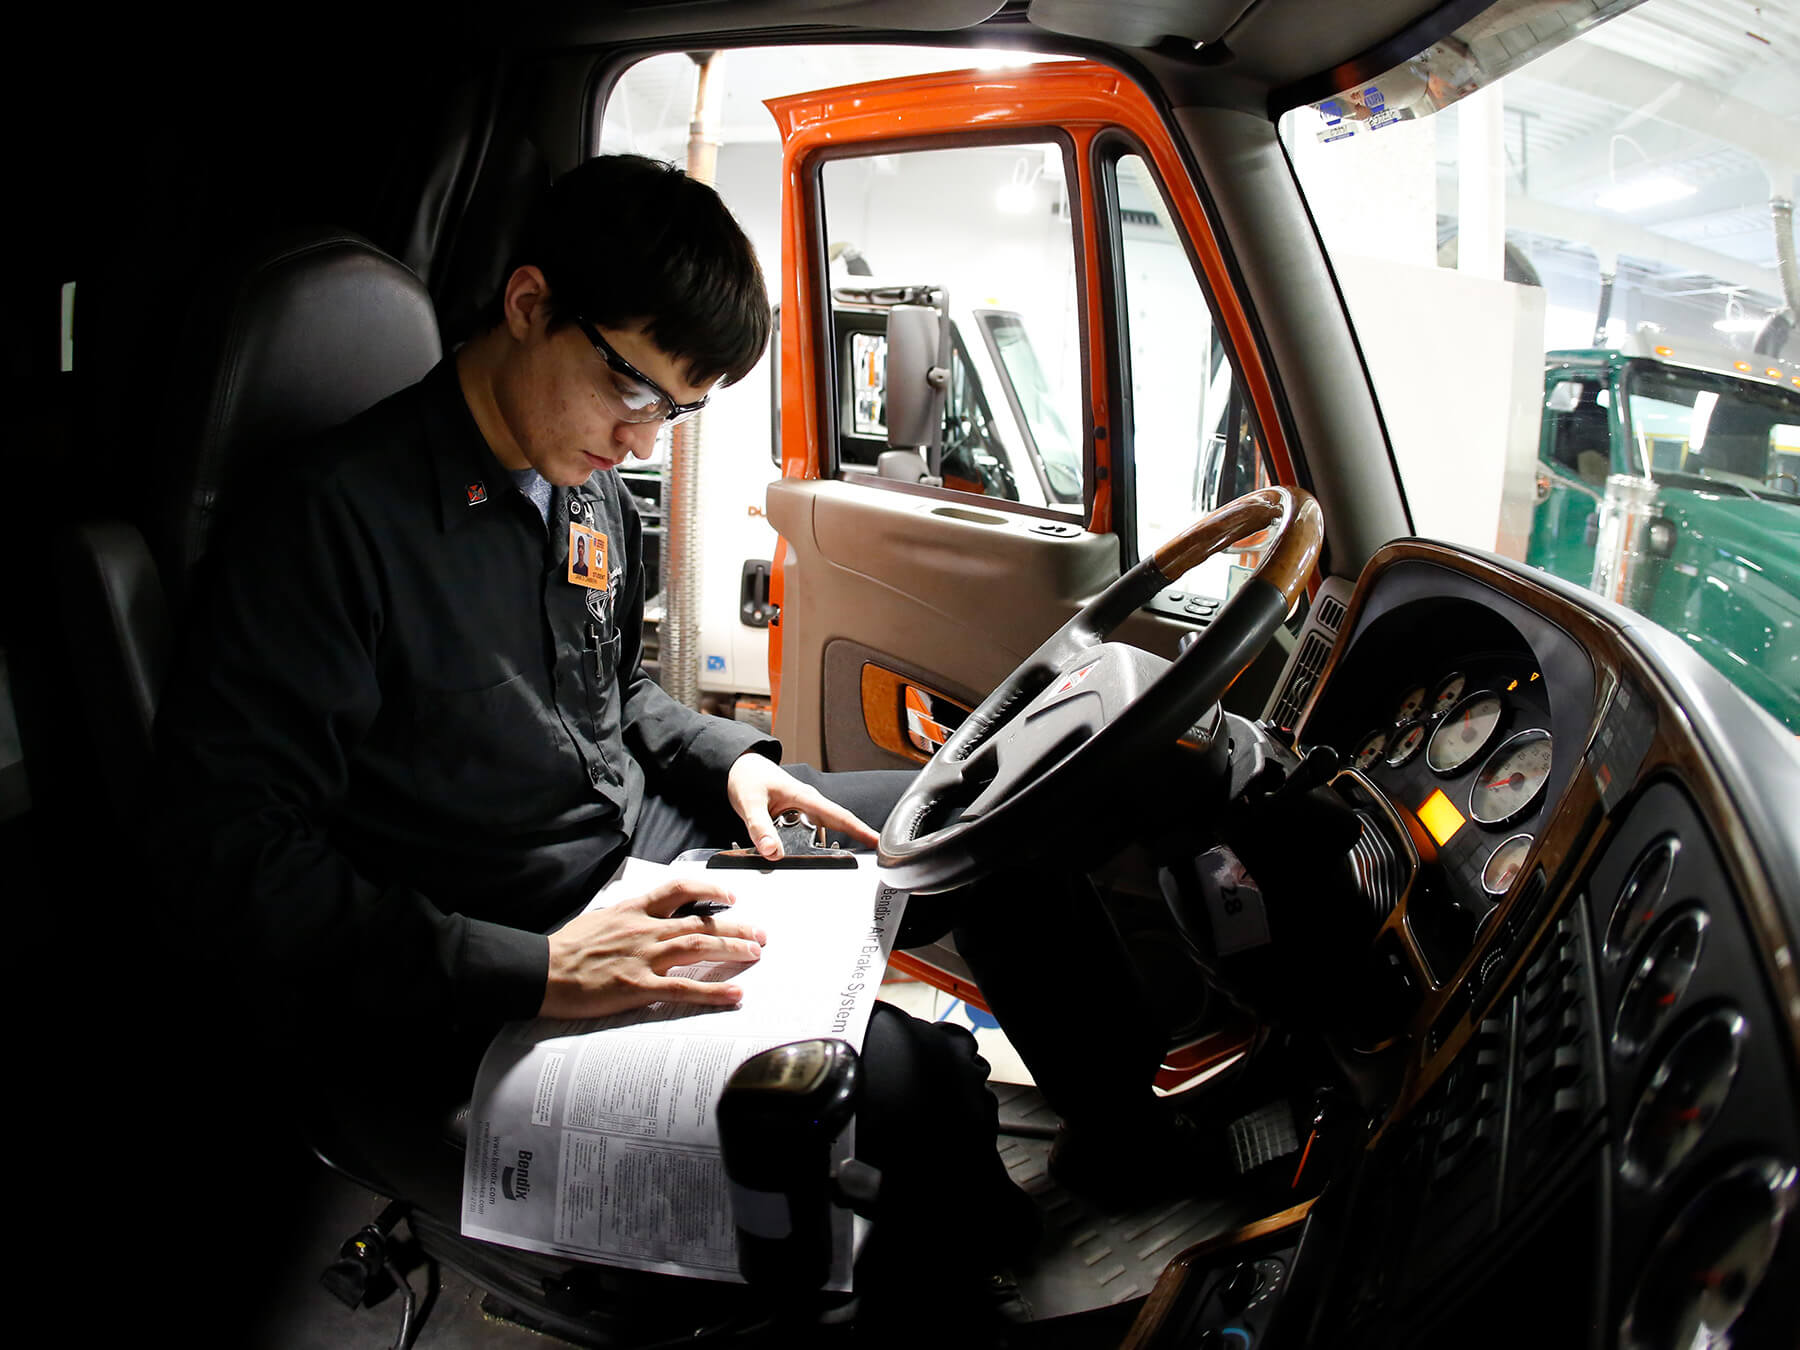 UTI student looking at a piece of paper inside a diesel truck